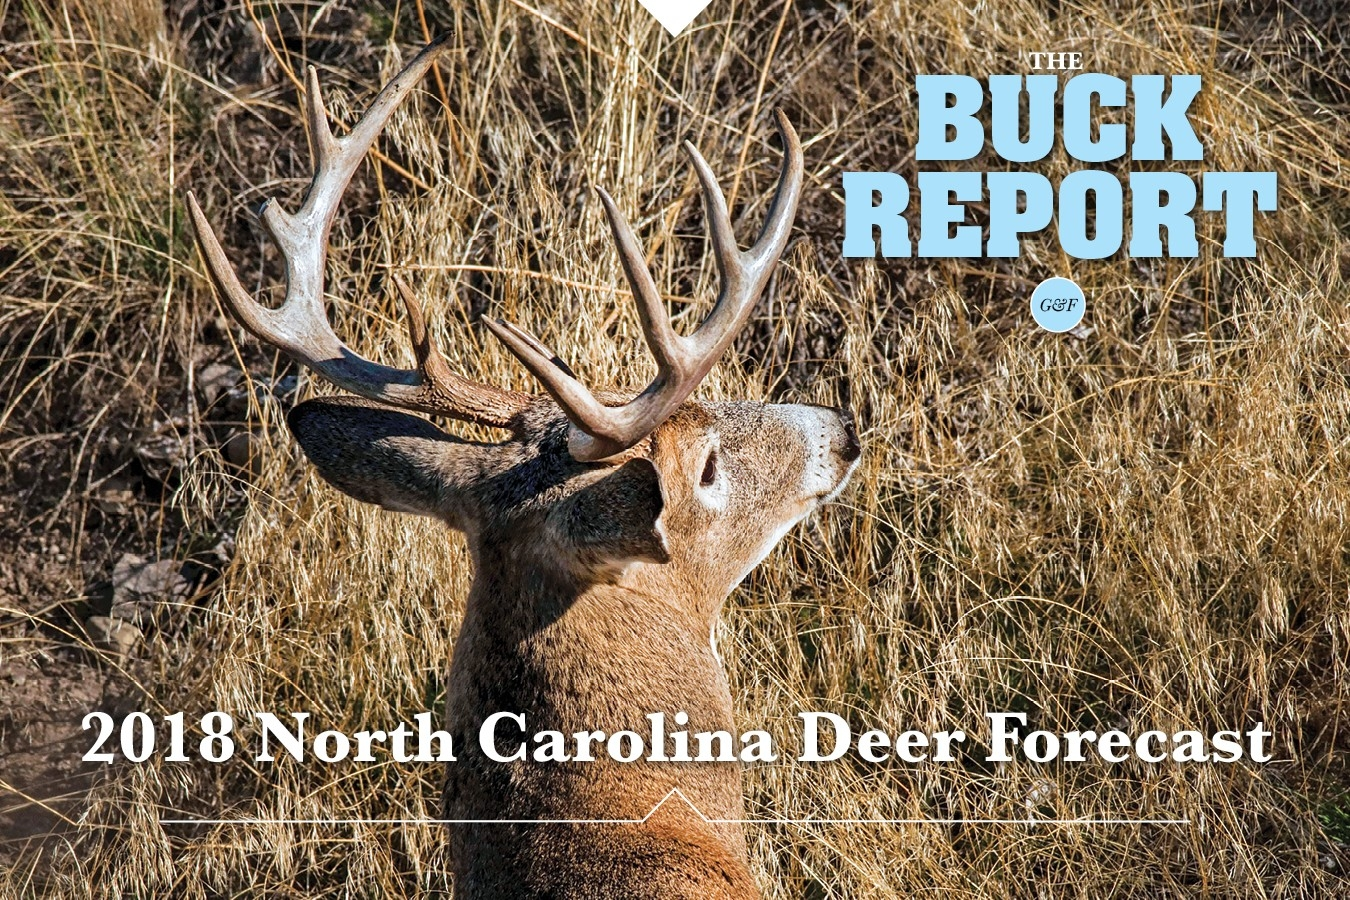 2018 North Carolina Deer Forecast  2020 Deer Season Forecast